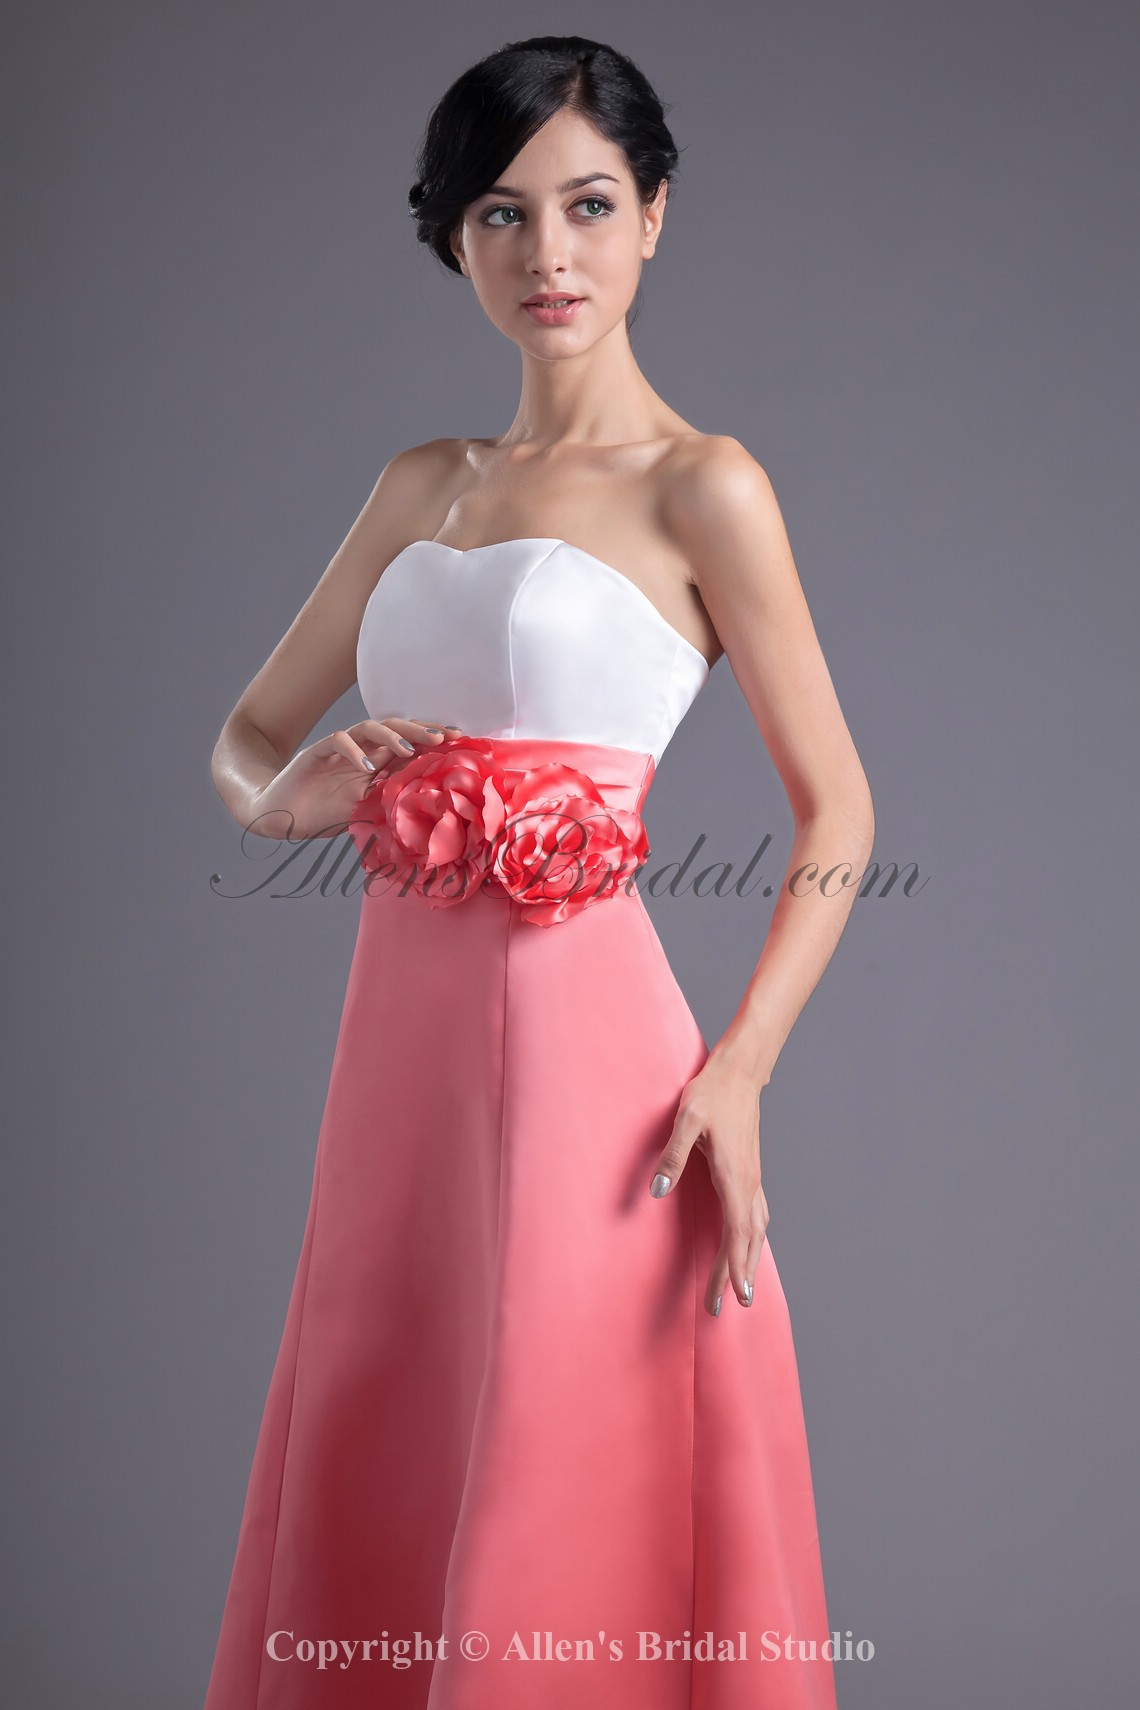 /42-333/satin-strapless-neckline-a-line-ankle-length-hand-made-flowers-prom-dress.jpg